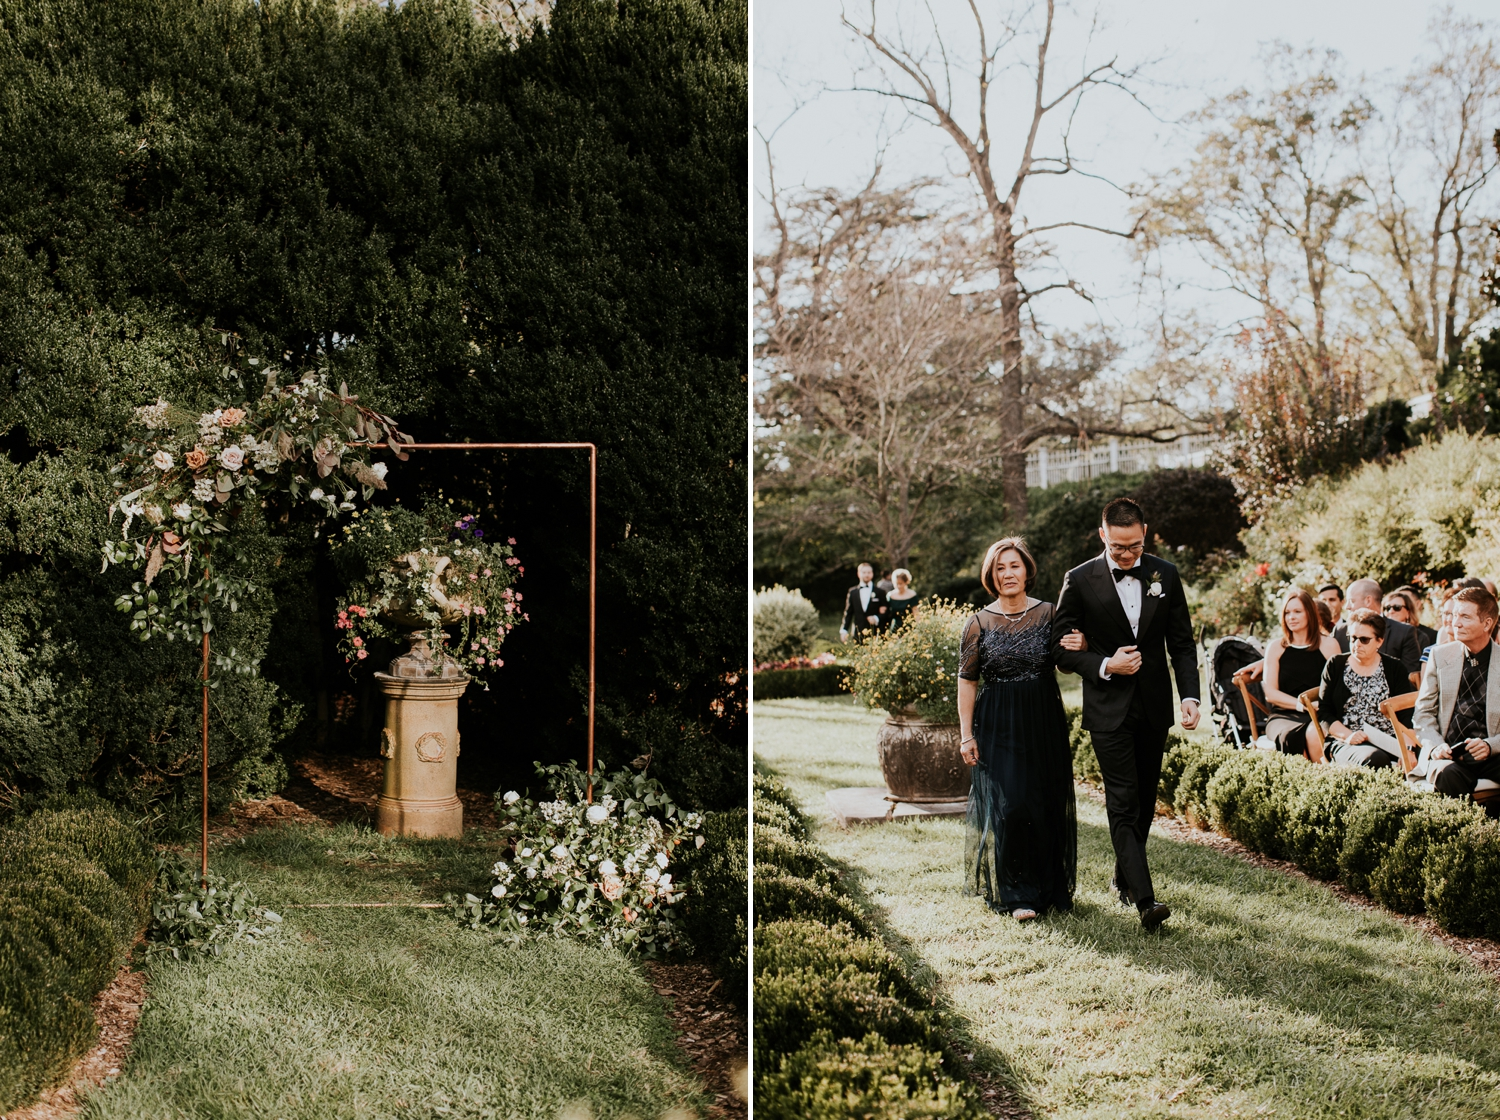 leesburg-virginia-oatlands-historic-house-wedding-photographer-planner-vendors 27.jpg